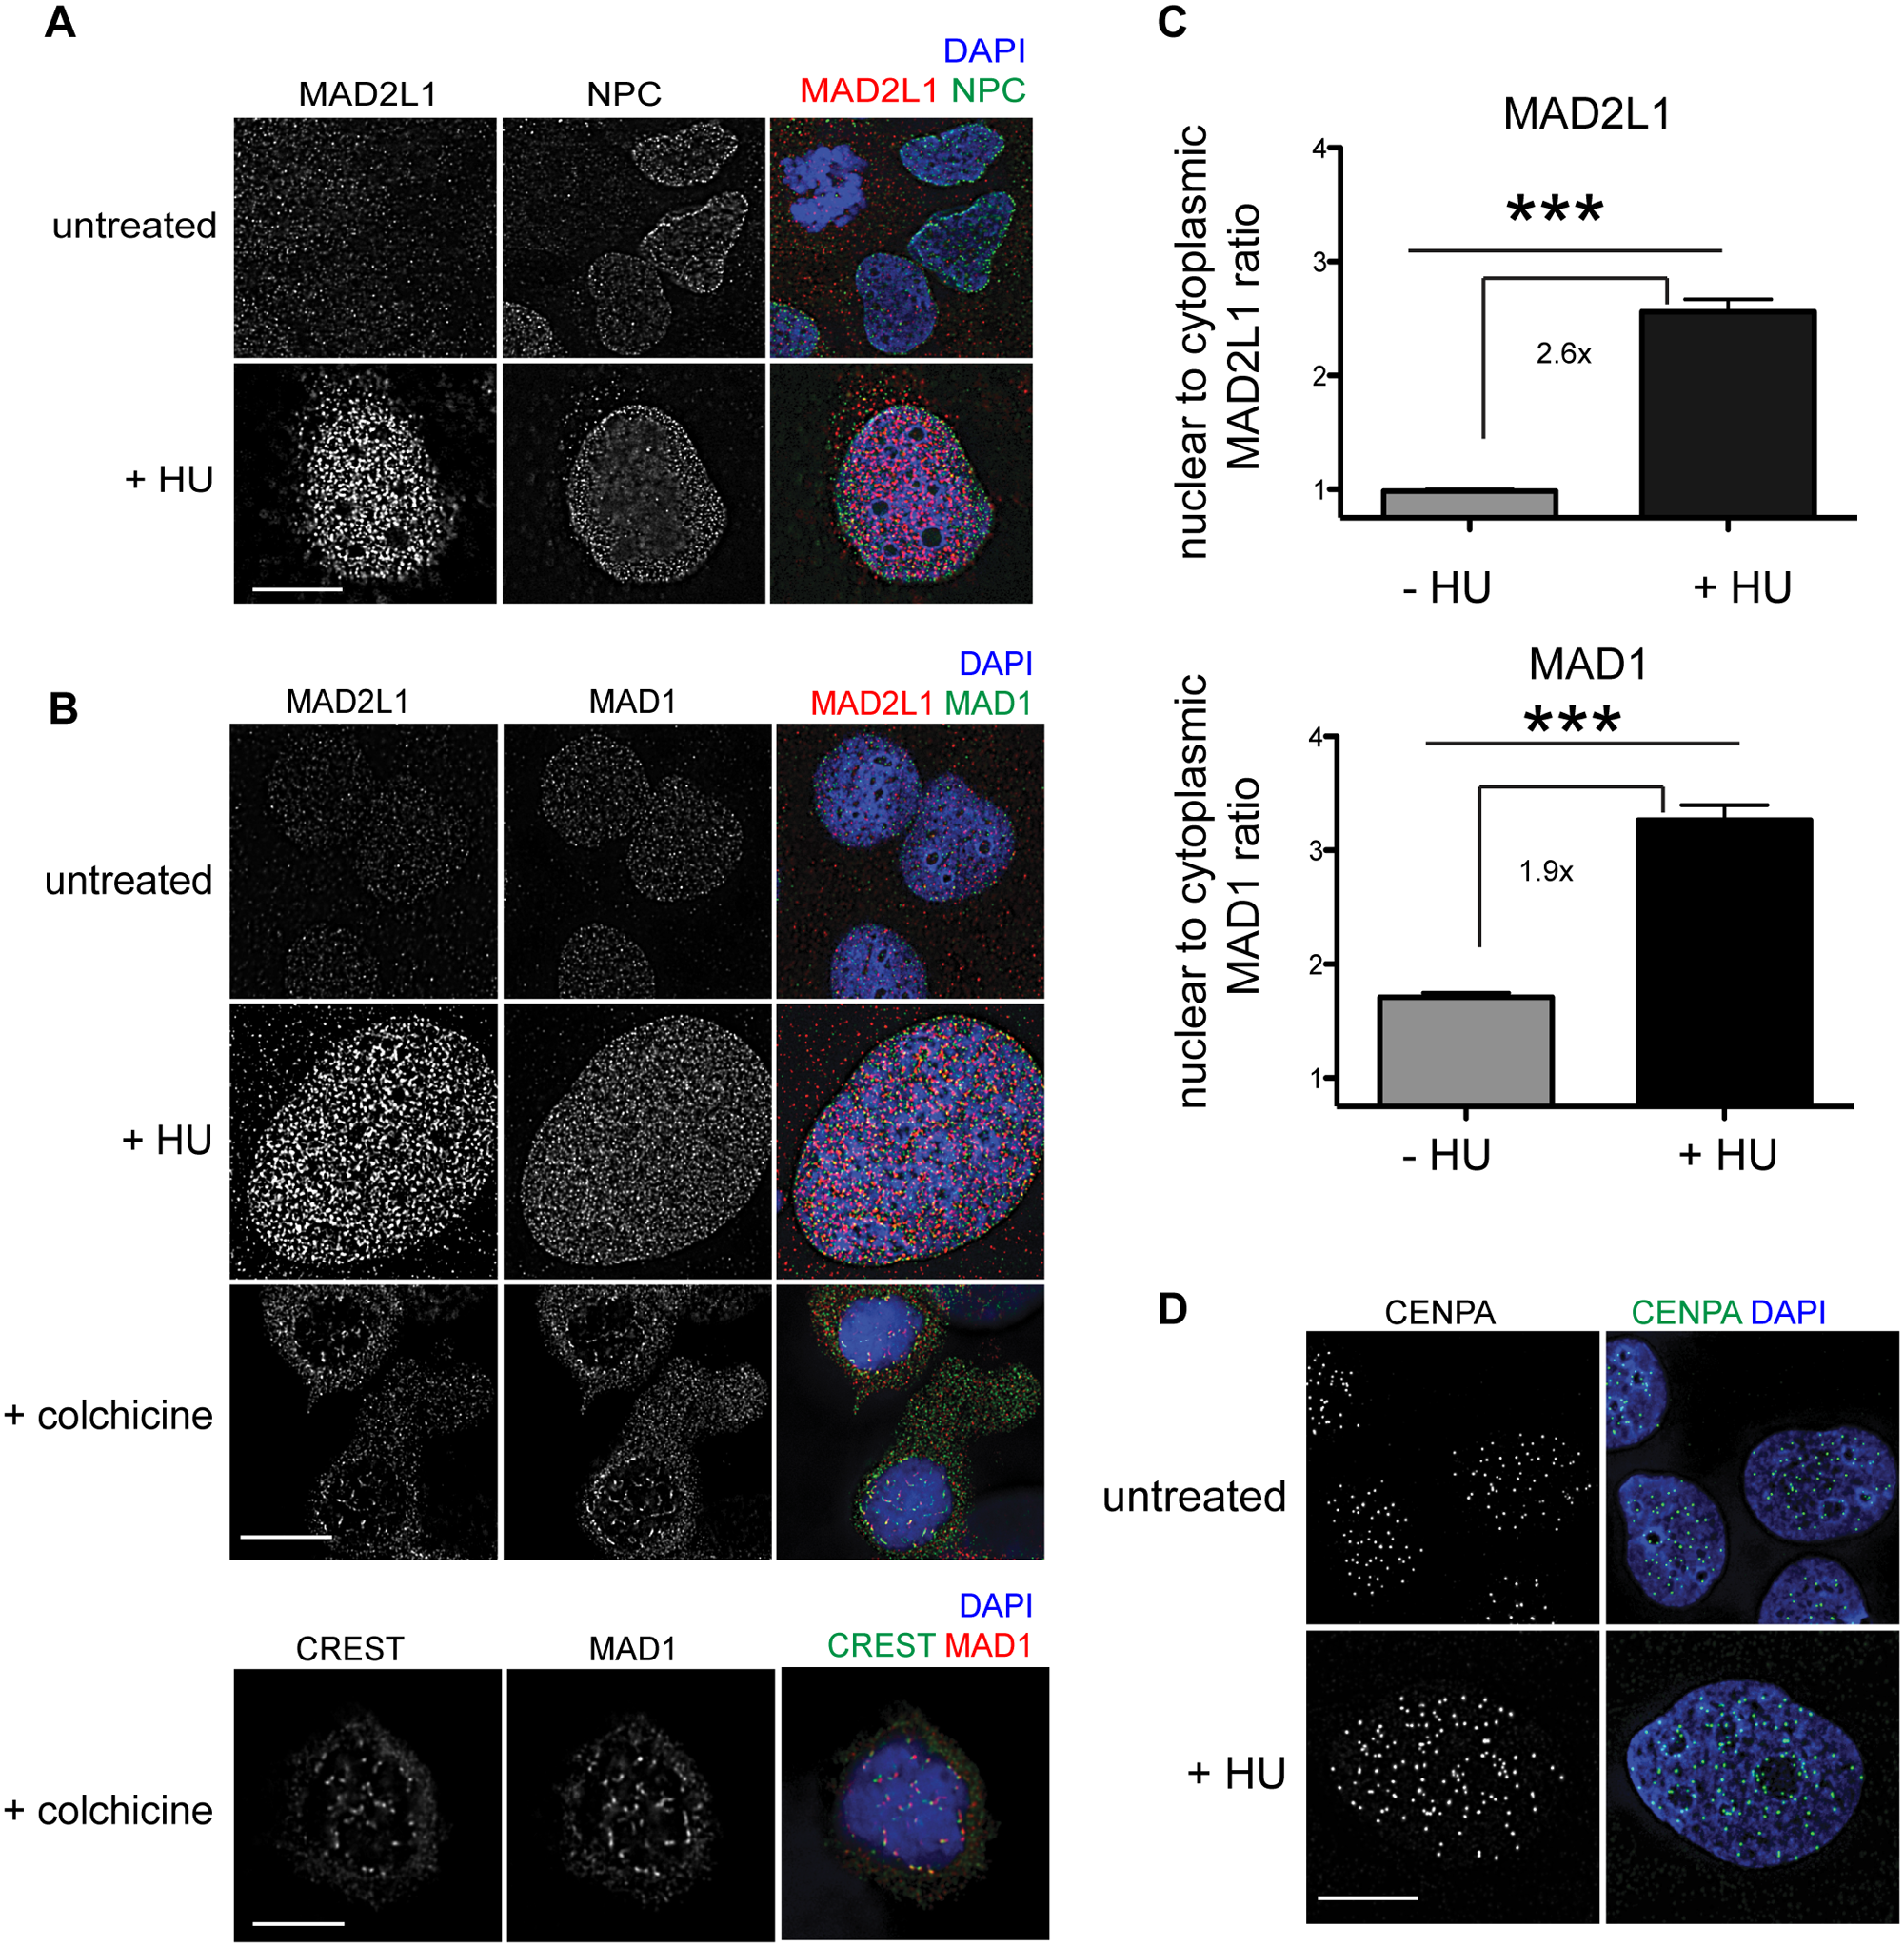 MAD1 and MAD2L1 are enriched in the nucleus in U2OS cells after HU exposure.